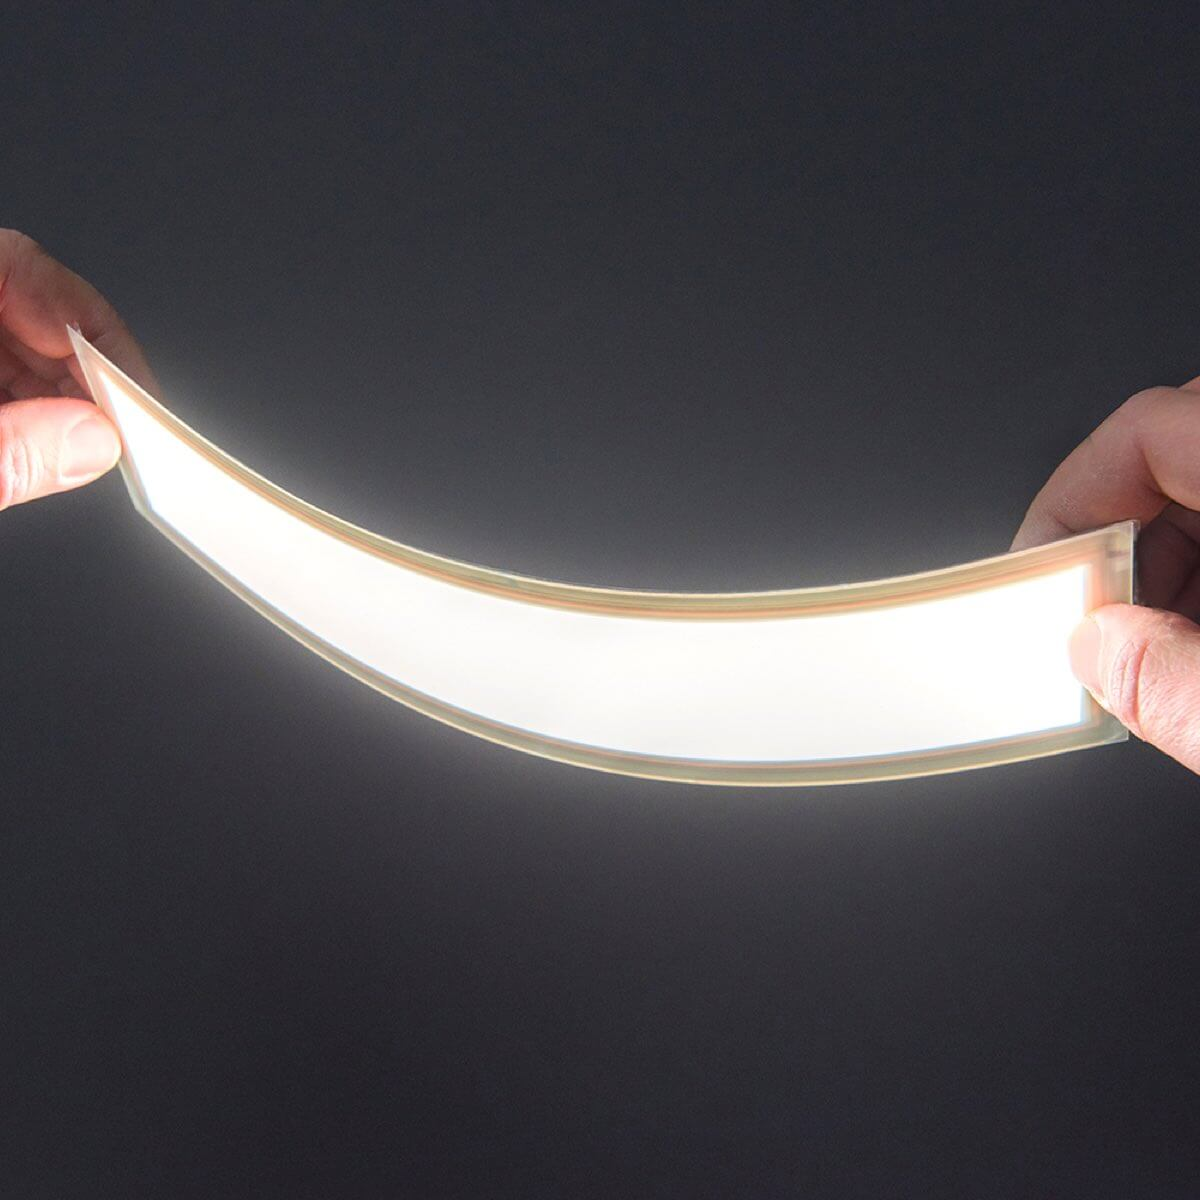 bendable OLED light